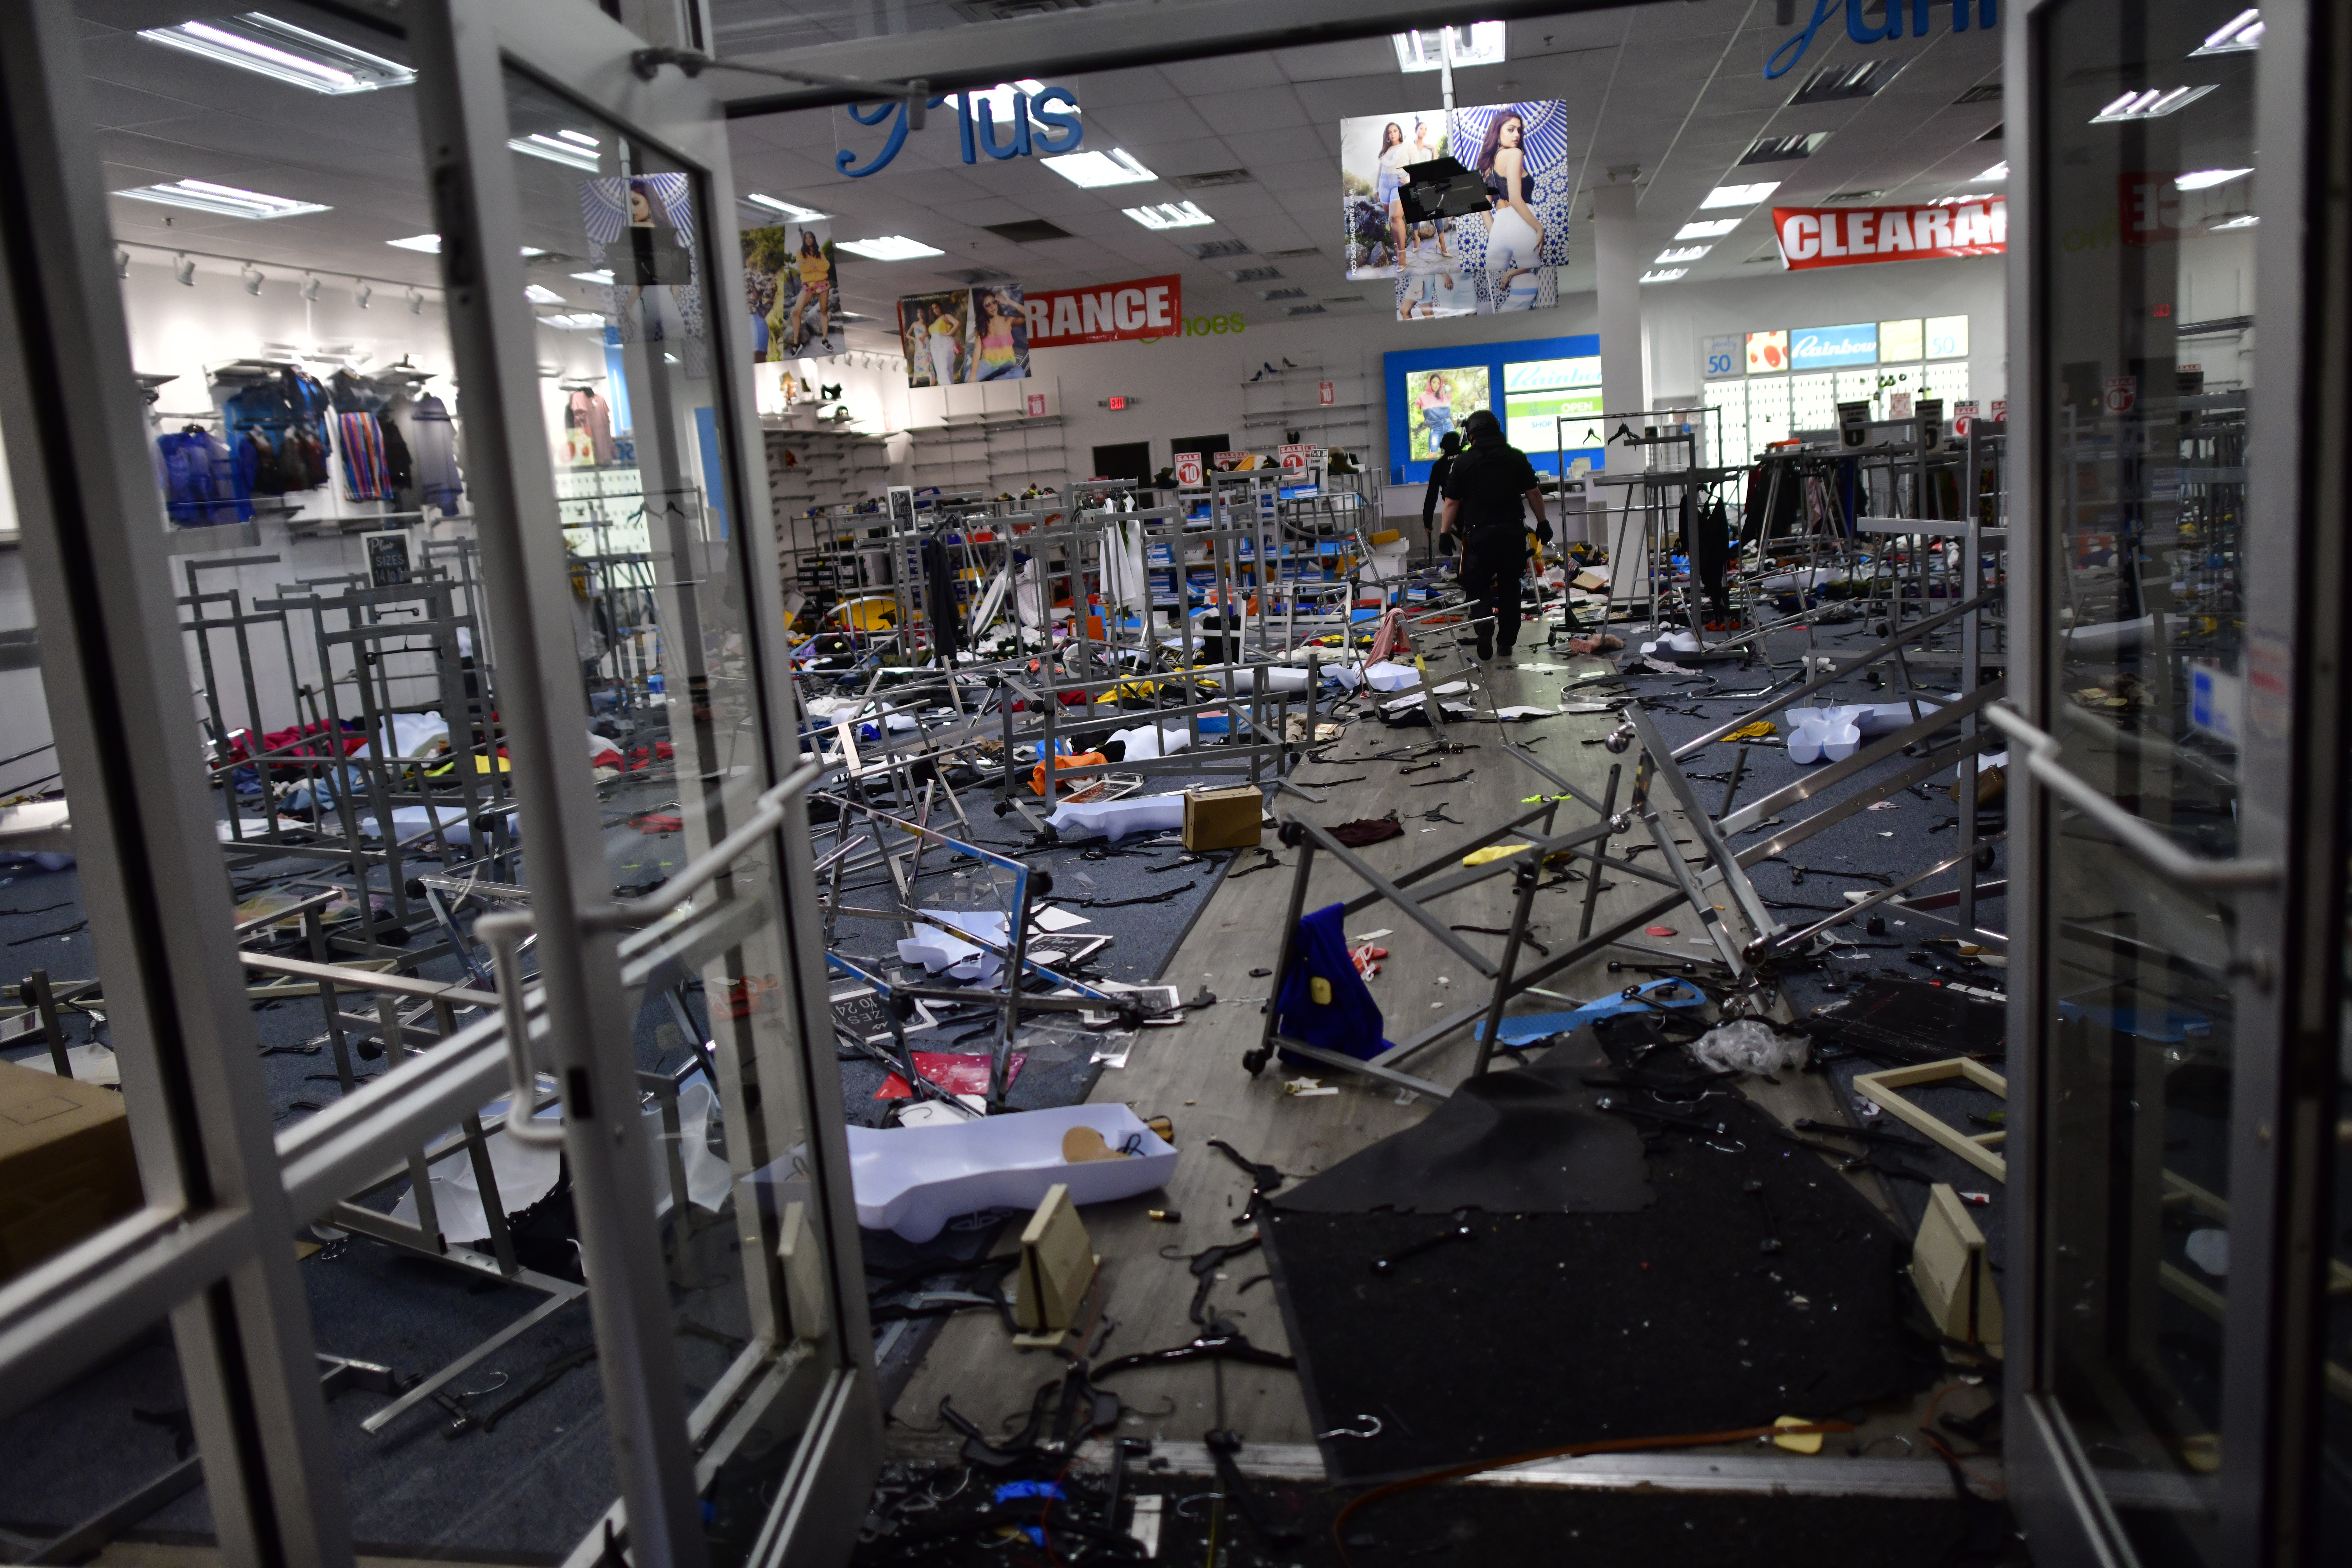 Police investigate a looted clothing store during widespread unrest following the death of George Floyd on May 31, 2020 in Philadelphia, Pennsylvania. (Photo by Mark Makela/Getty Images)